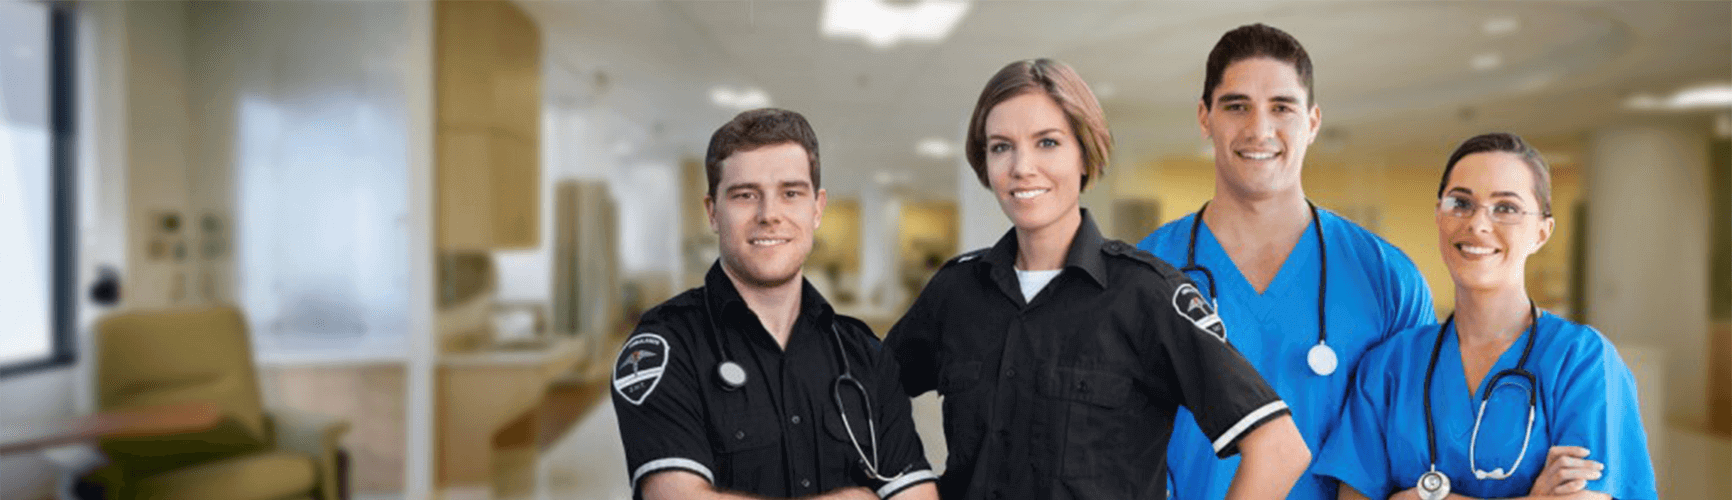 DEMA paramedics and healthcare workers